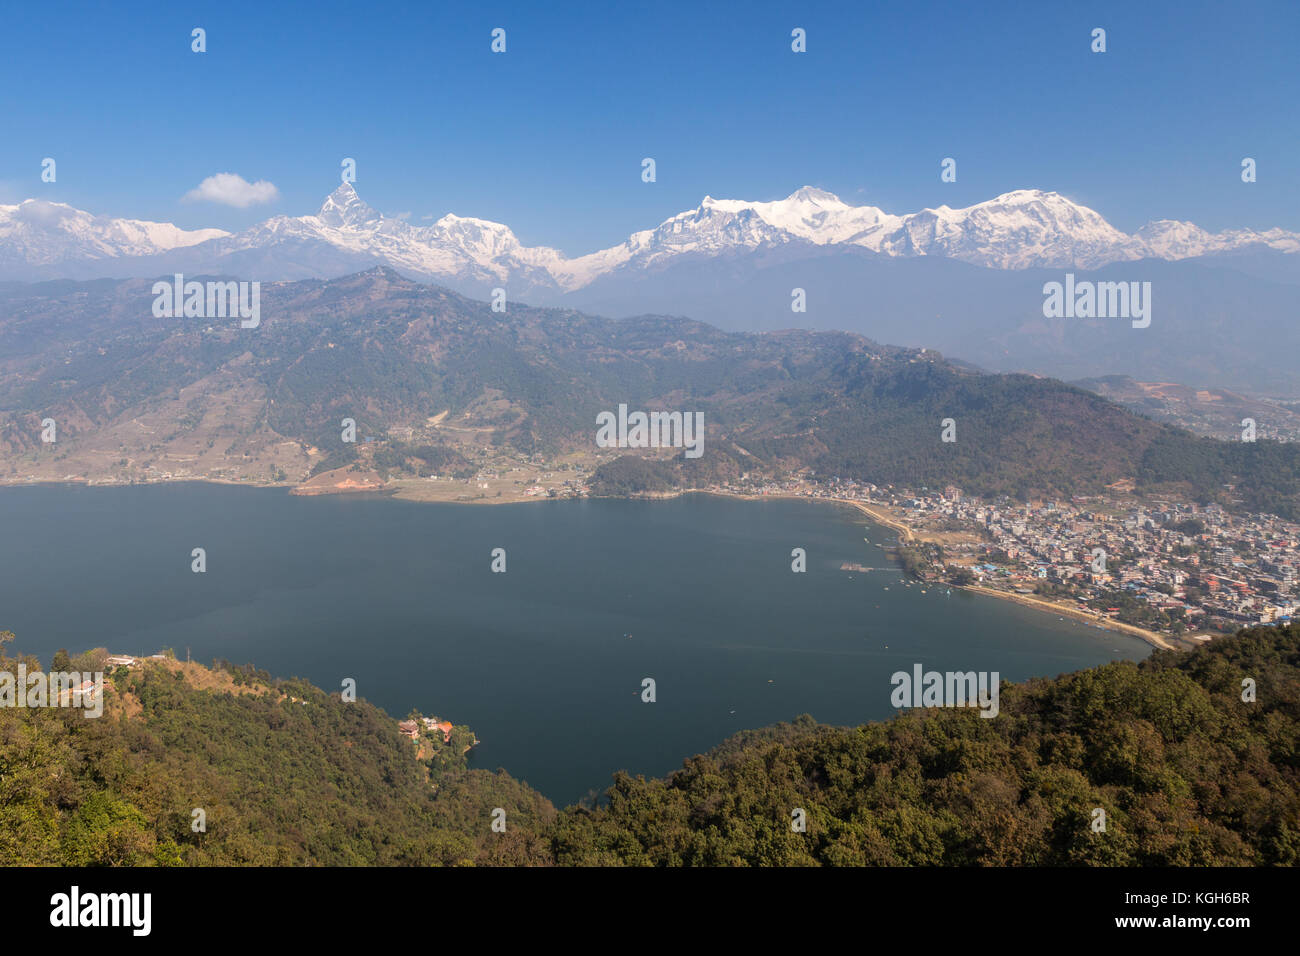 Pokhara seen from the track to the World Peace Pagoda - Stock Image